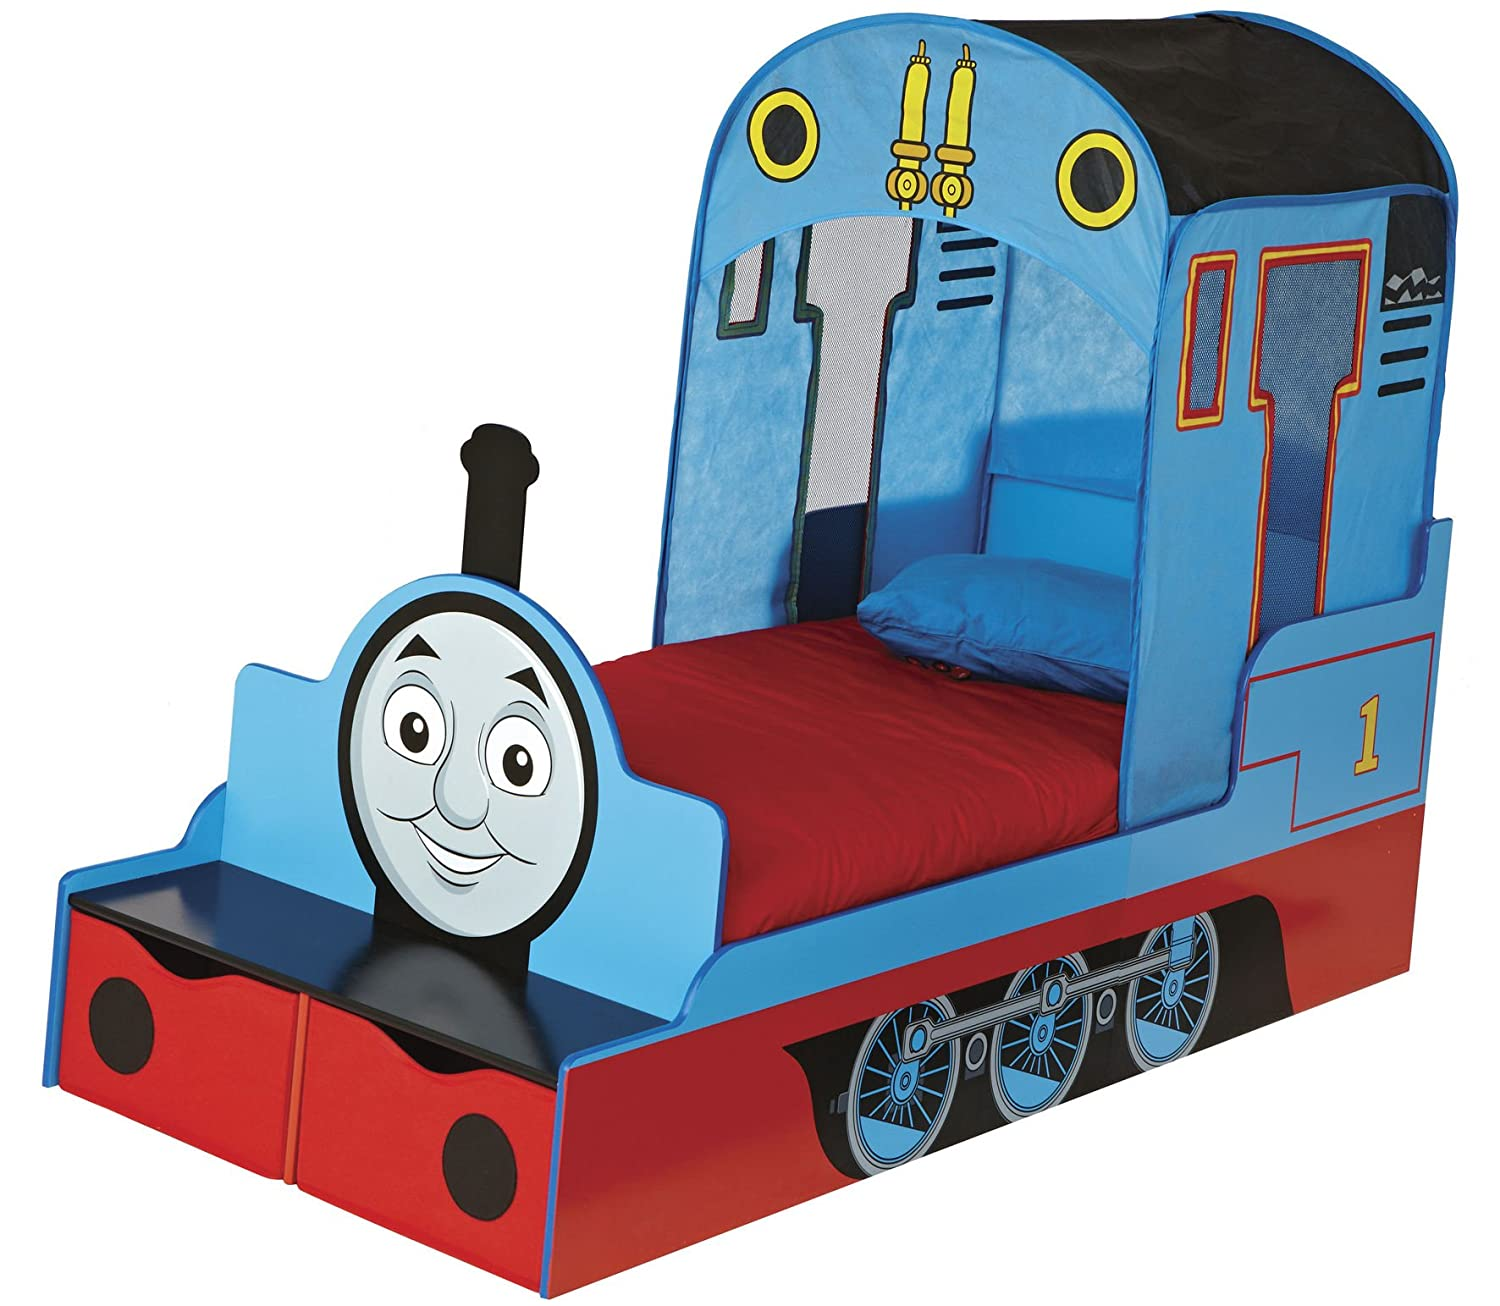 Thomas The Tank Engine Kids Toddler Bed With Underbed Storage HelloHome:  Amazon.co.uk: Kitchen U0026 Home